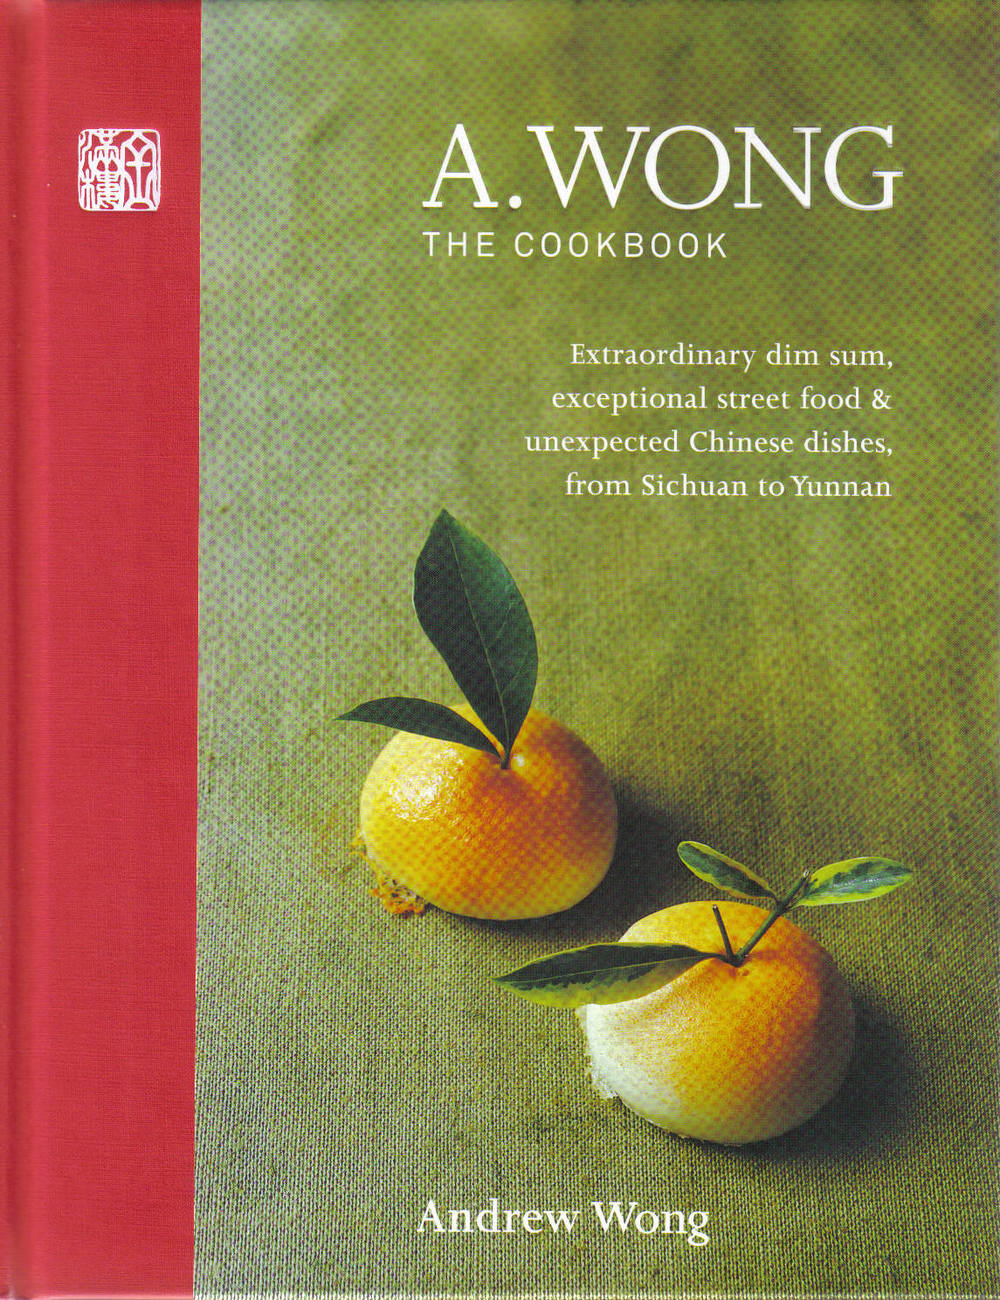 A WONG THE COOKBOOK  Cookery, 240 pages Octopus 2015  Reinventing modern British Chinese cookery, this is a book full of Andrew's extraordinary dim sum, exceptional street food and unexpected dishes from across China.